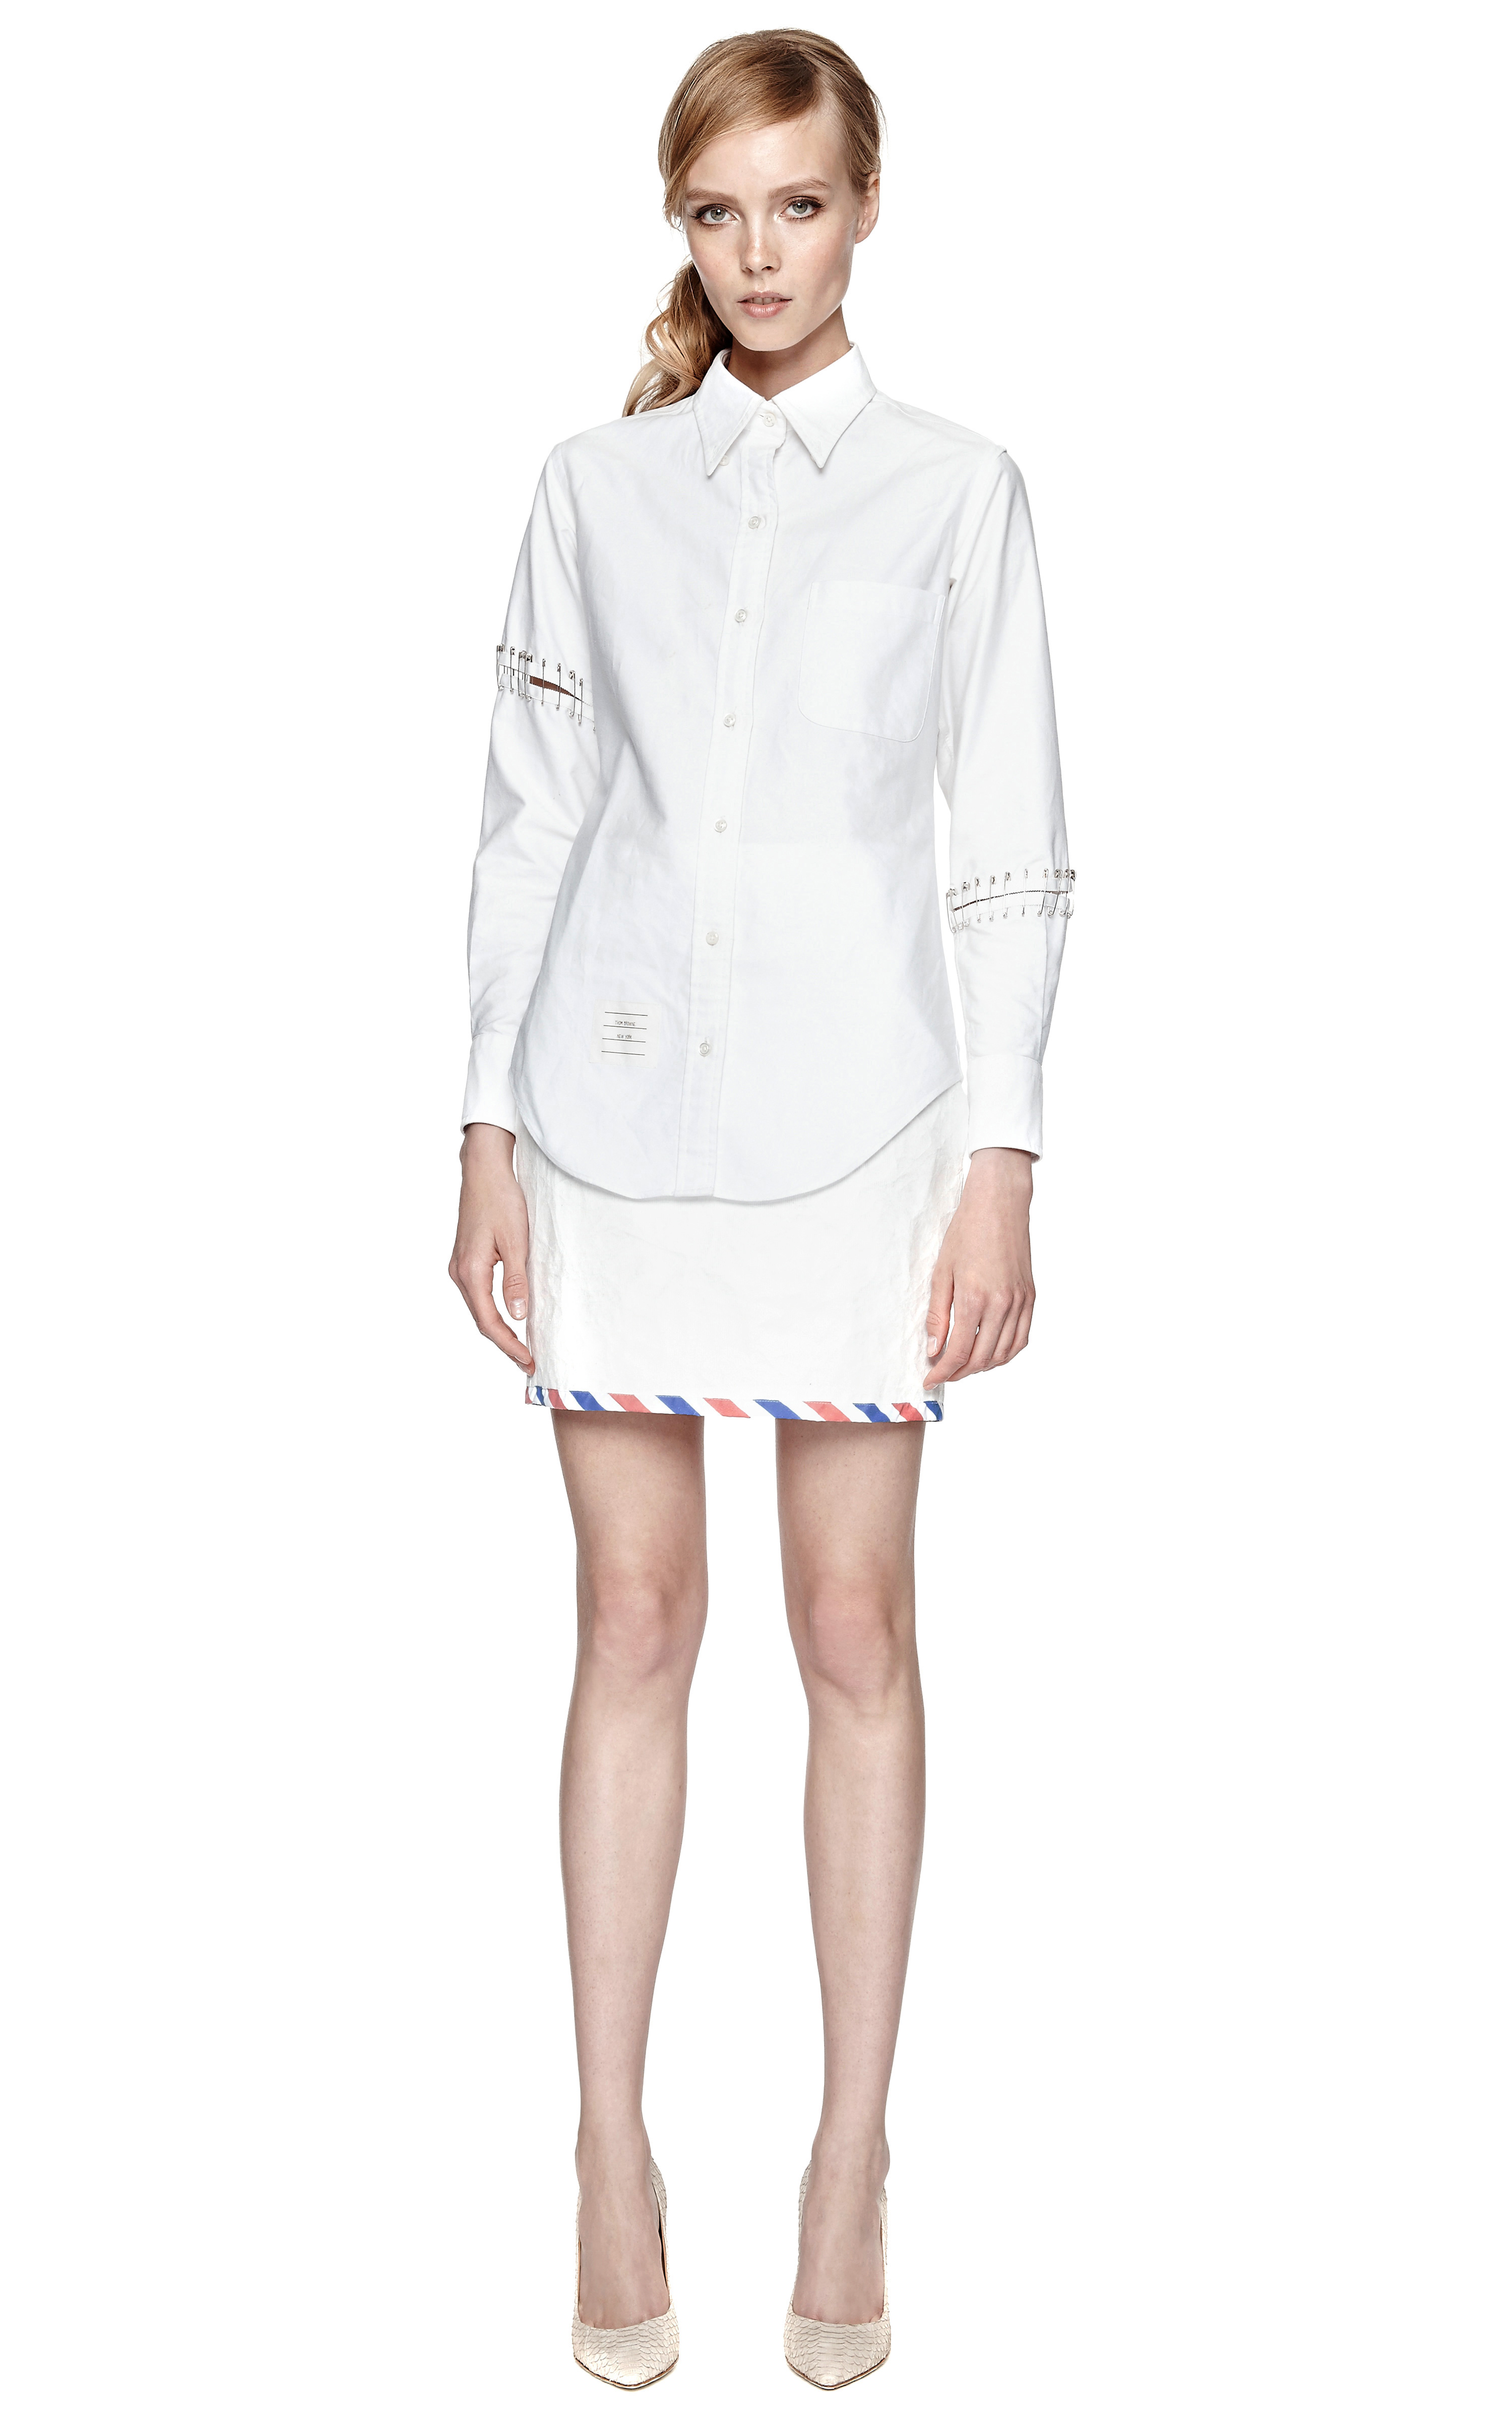 Thom browne oxford armed shirt in white lyst for Thom browne white shirt